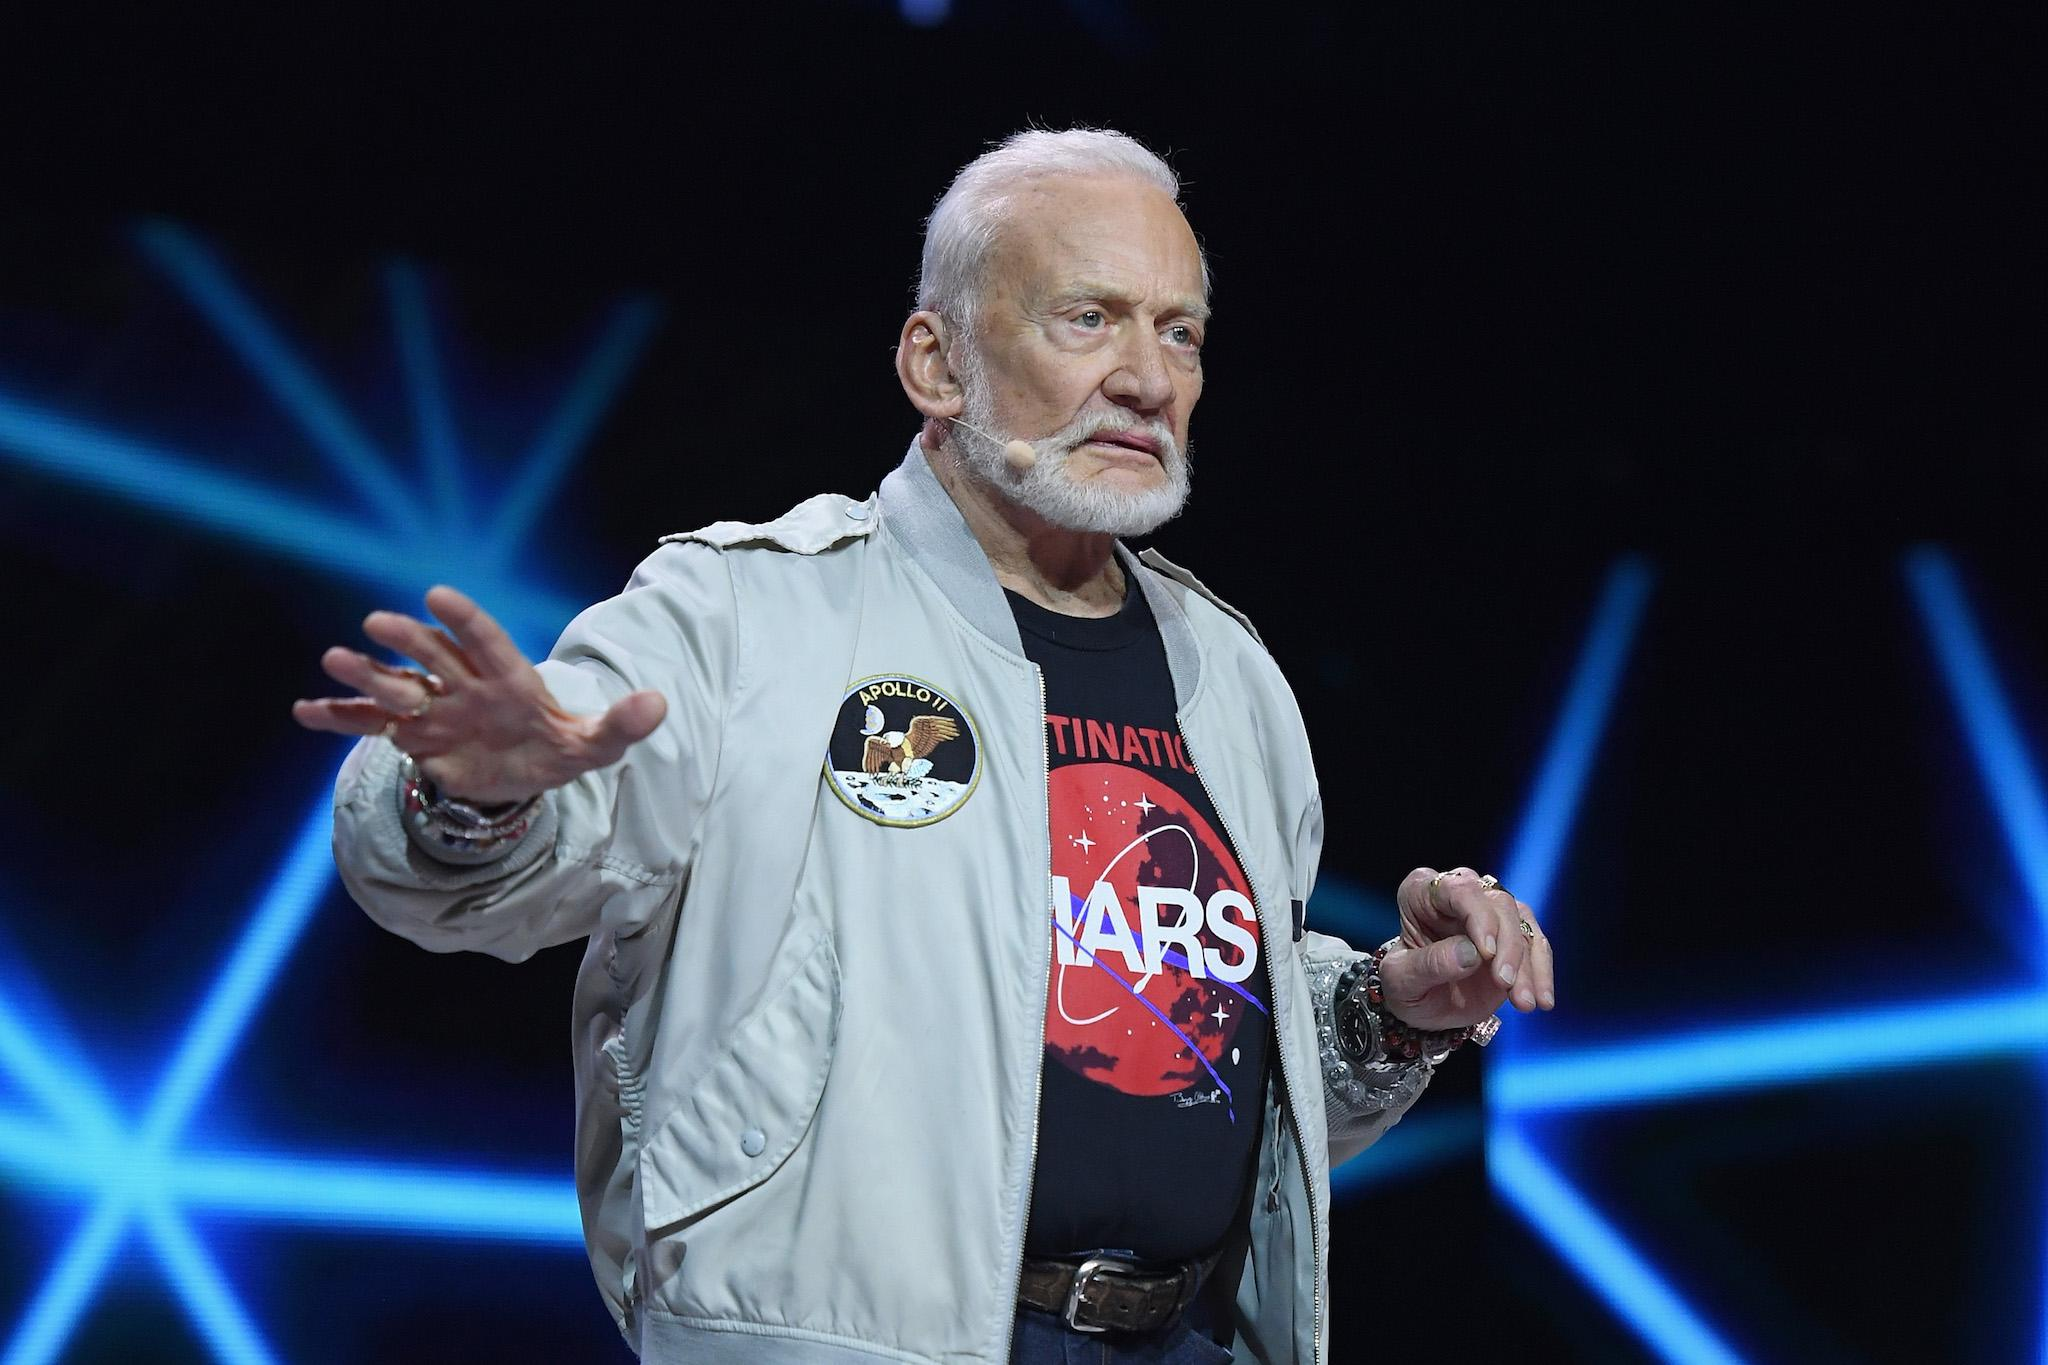 Nasa should get rid of International Space Station as soon as possible and go to Mars instead, says Buzz Aldrin